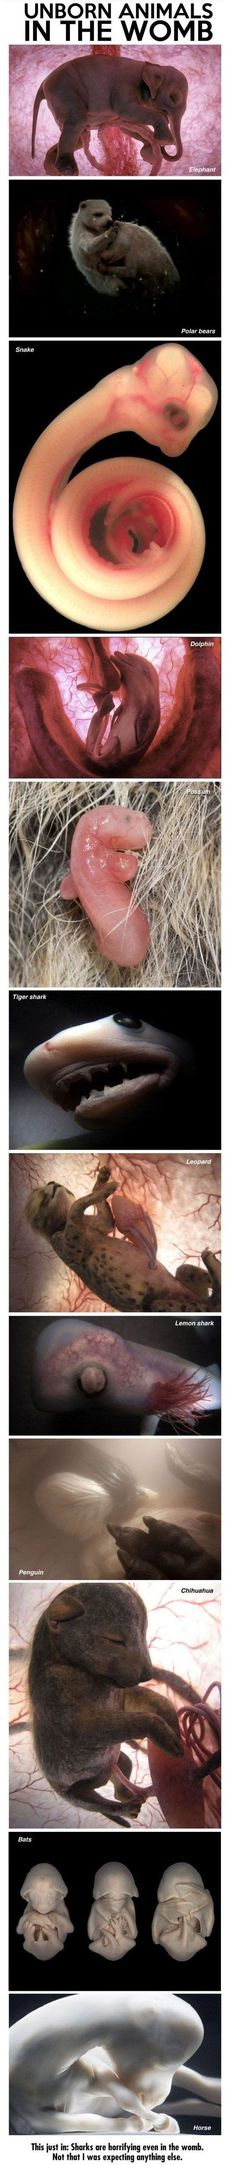 These images were created for a National Geographic special called In The Womb: Animals by Producer Peter Chinn. He used a combination of ultrasound technology, tiny cameras, and computer design to create these incredible images that replicate what fetal animals look like.: